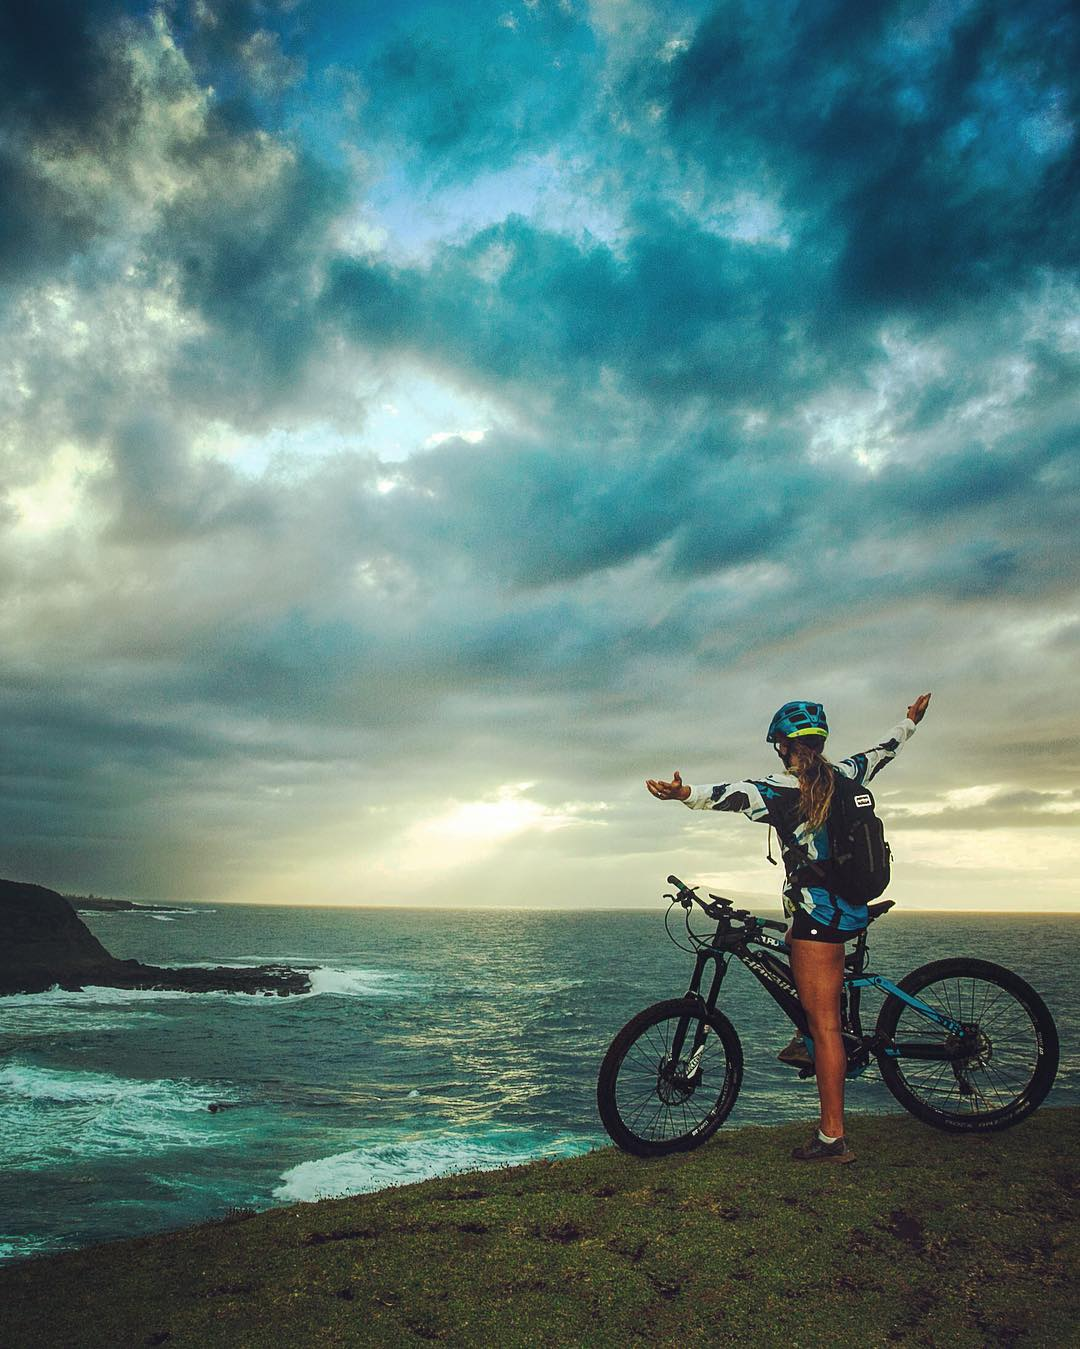 Olympic skier @resistiegler on her #SDURO out in Maui! Where will your #Haibike take you this weekend?  Photo from @pritchdog